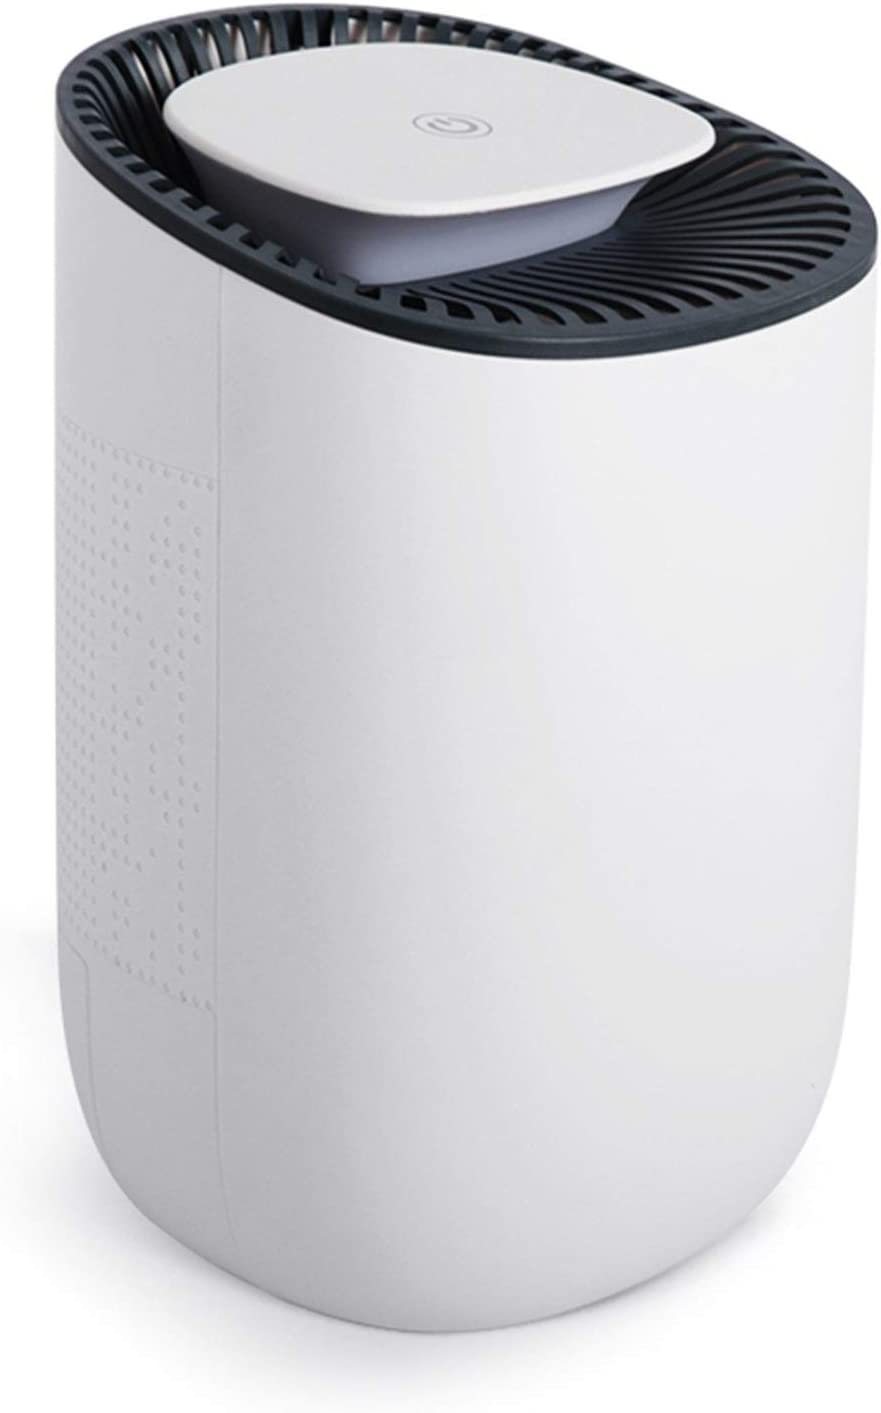 lilizhang Raleigh Mall Selling rankings Dehumidifier ABC Range Energy Effici 600ml Ultra-Quiet